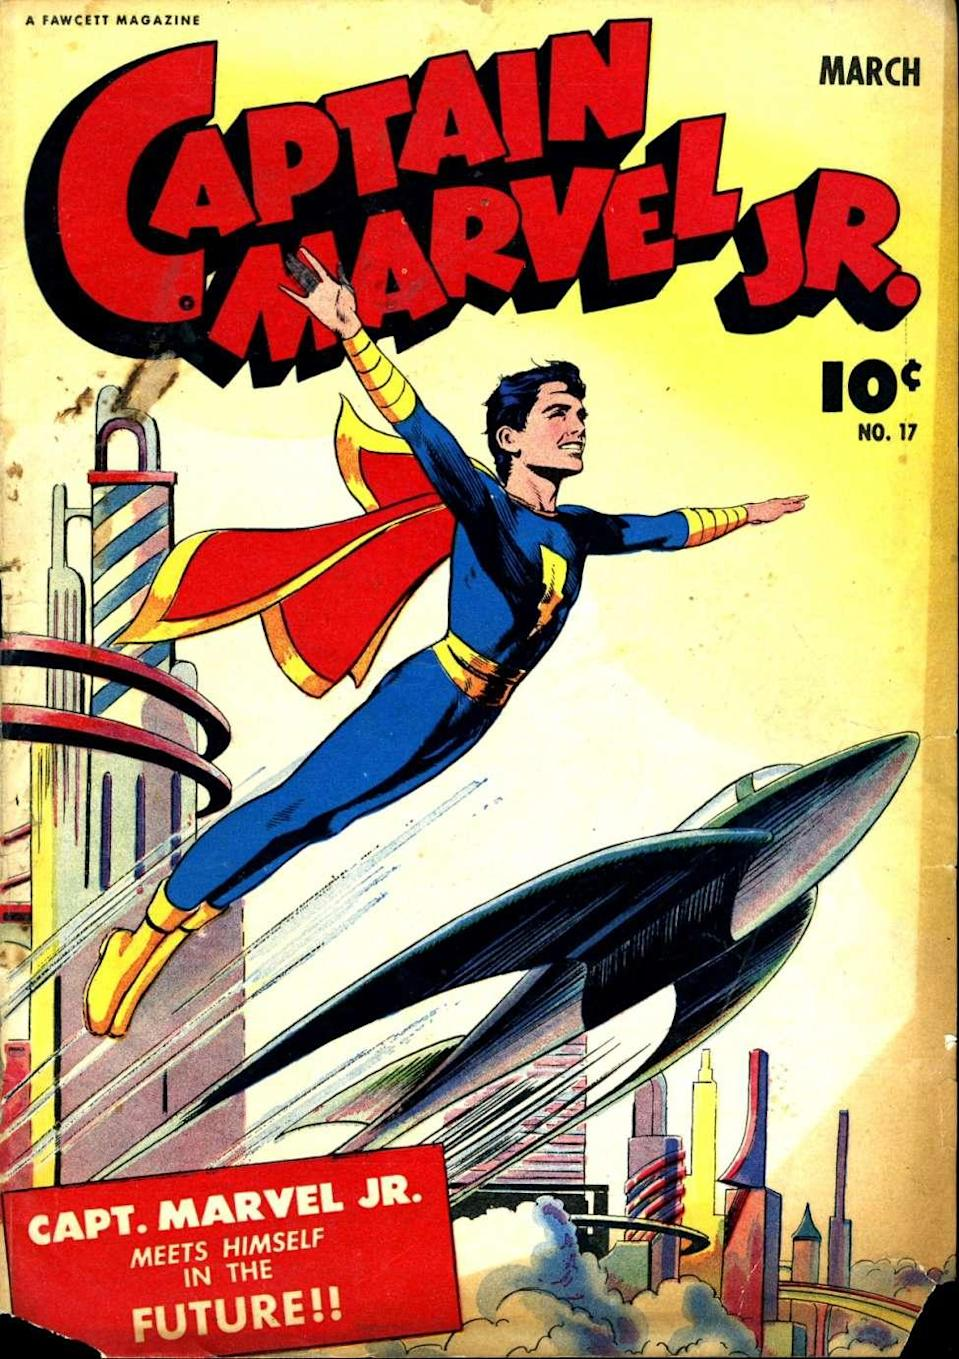 Captain Marvel, Jr. would inspire the look of Elvis Presley. (Photo: DC Comics)